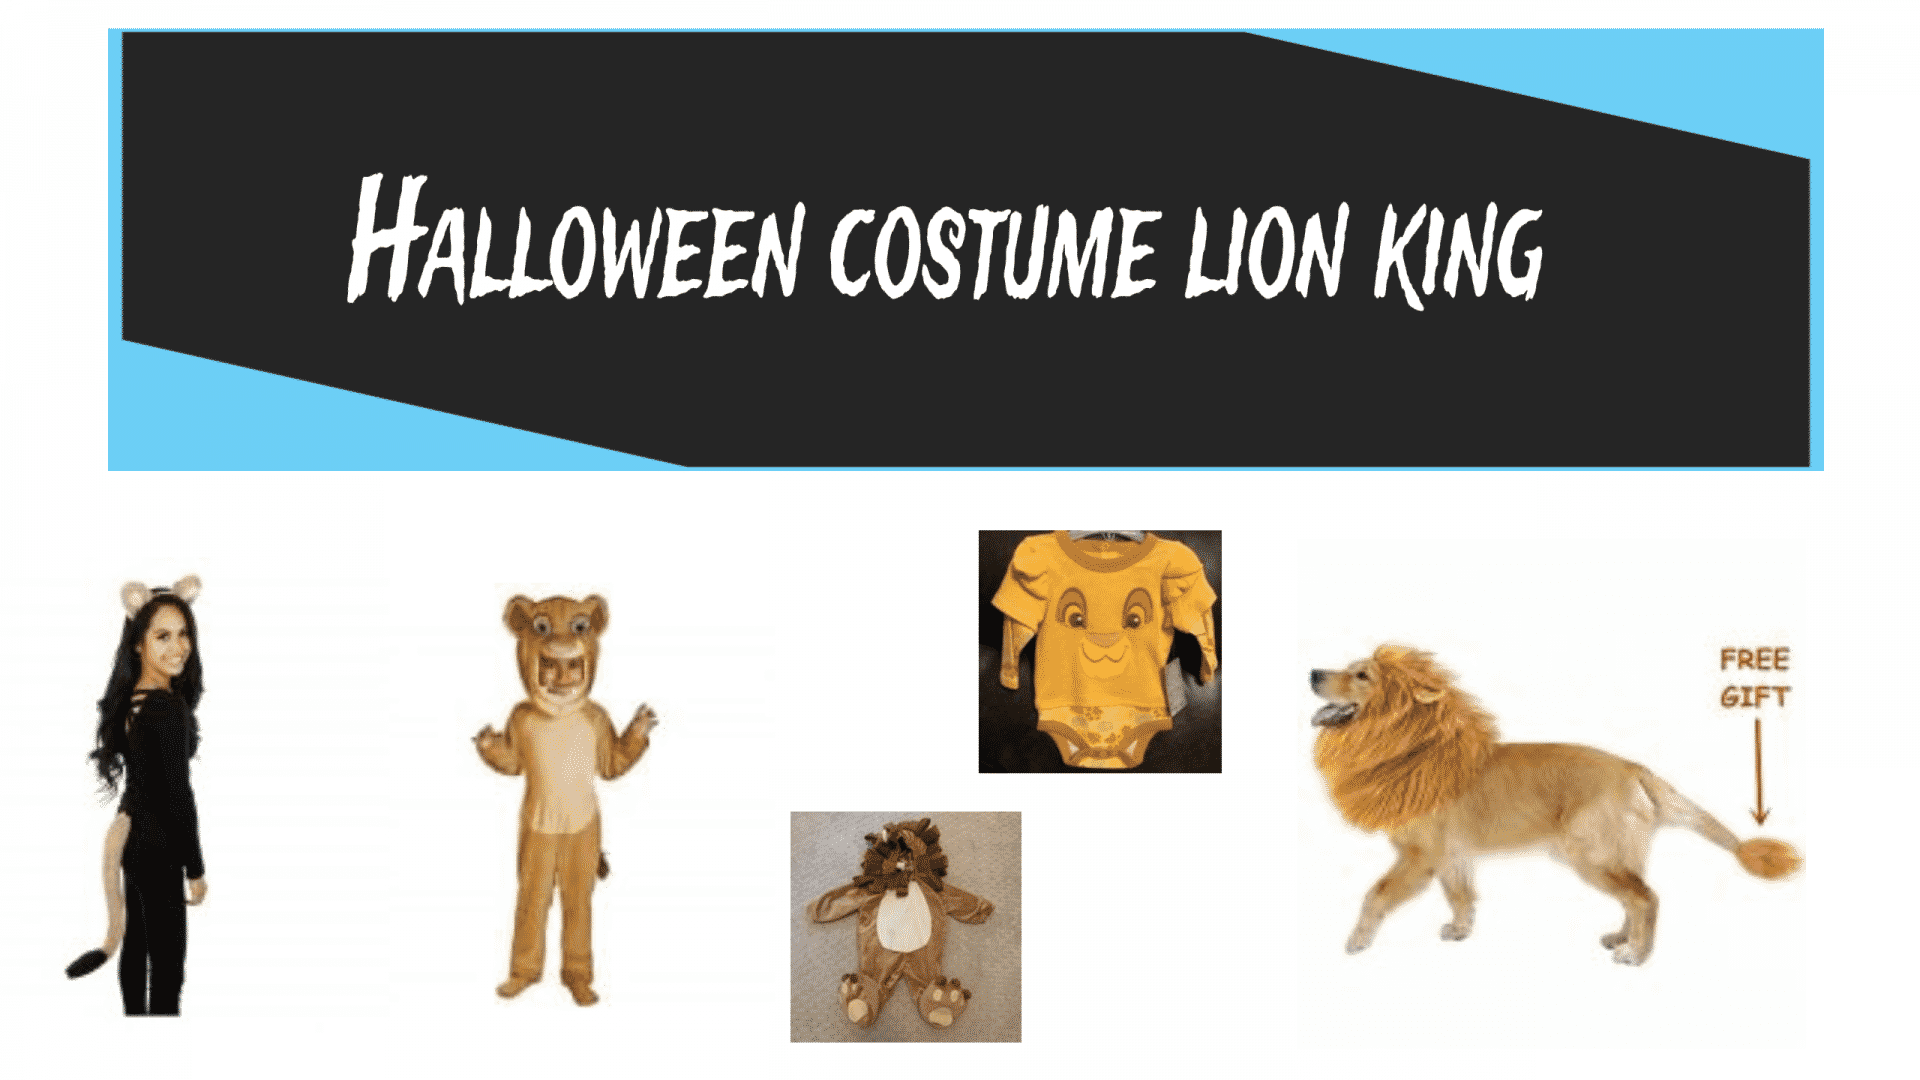 Halloween costume lion king